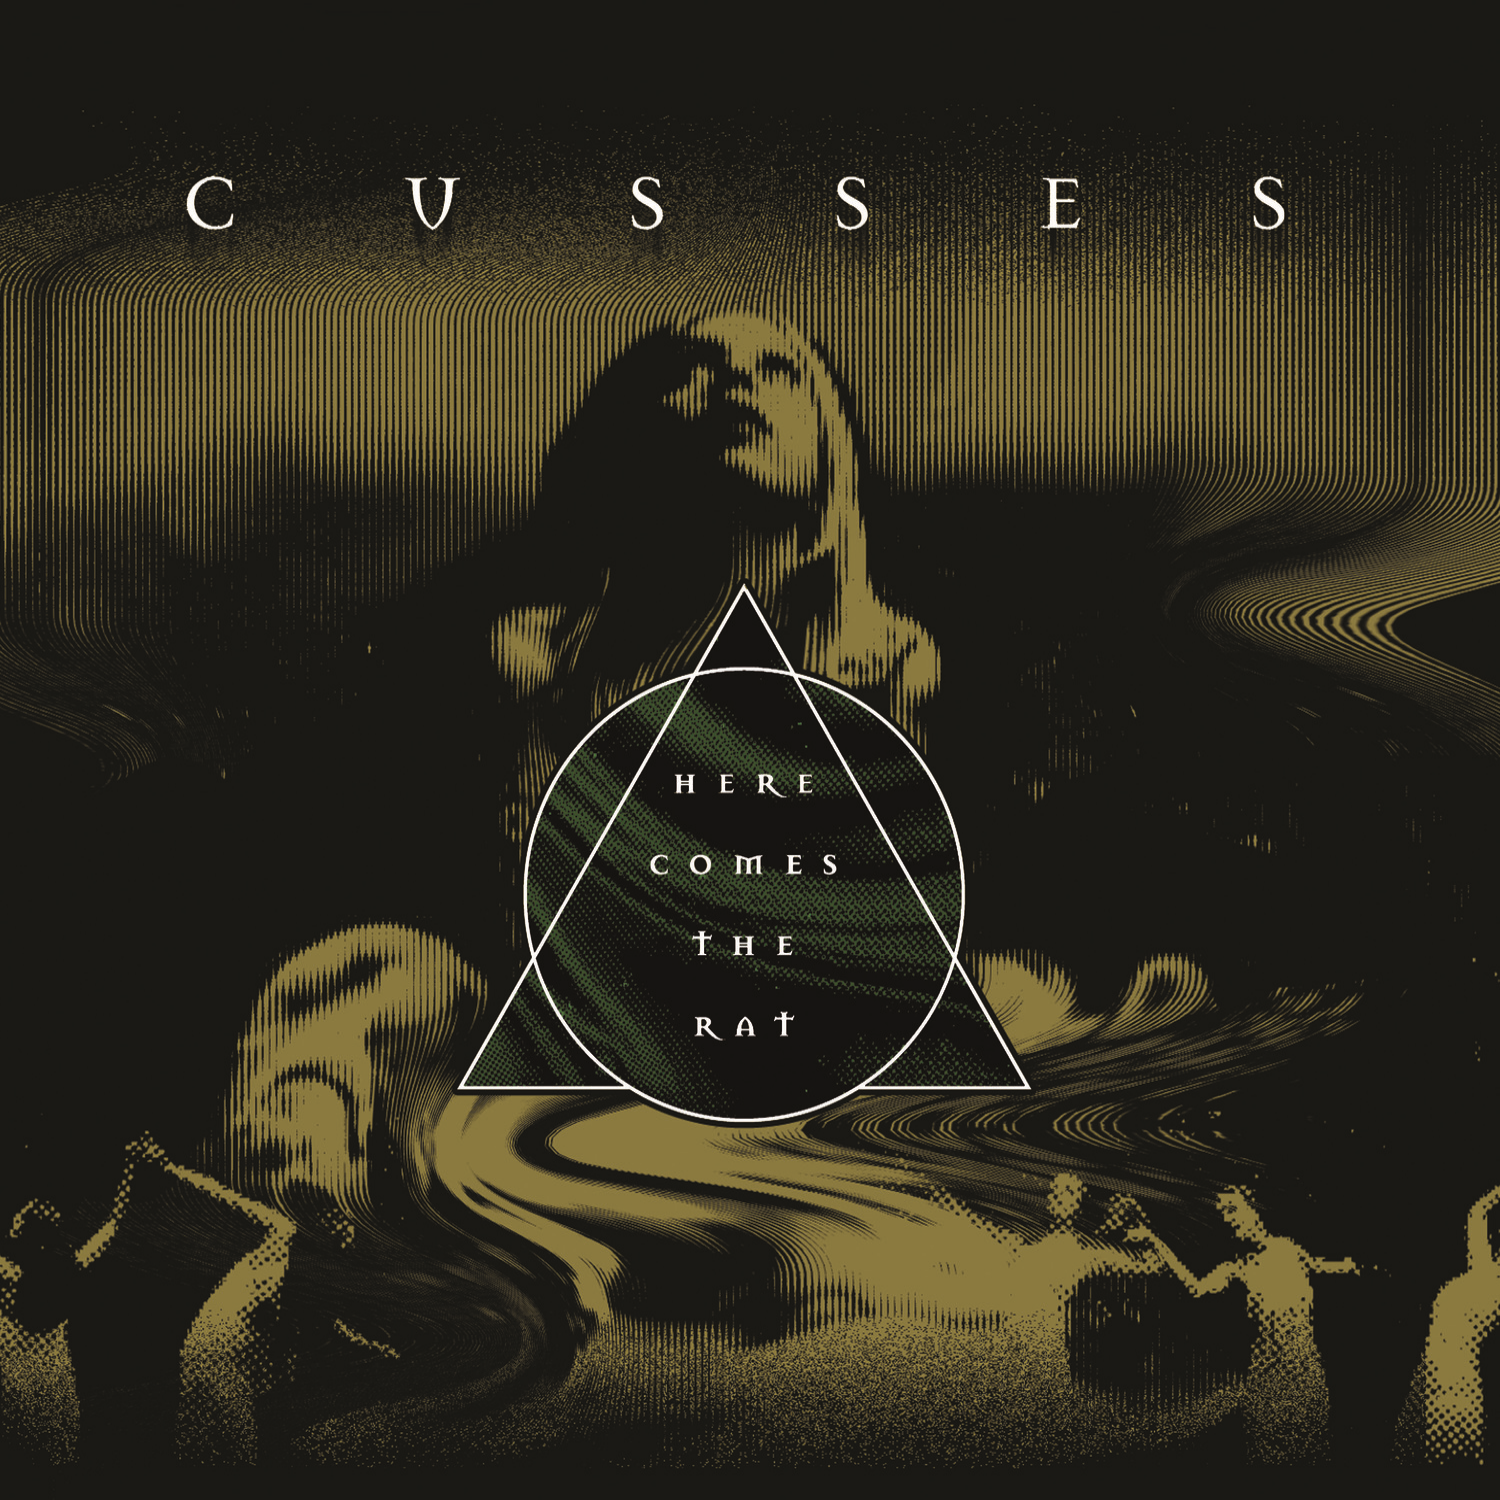 cusses - here comes the rat